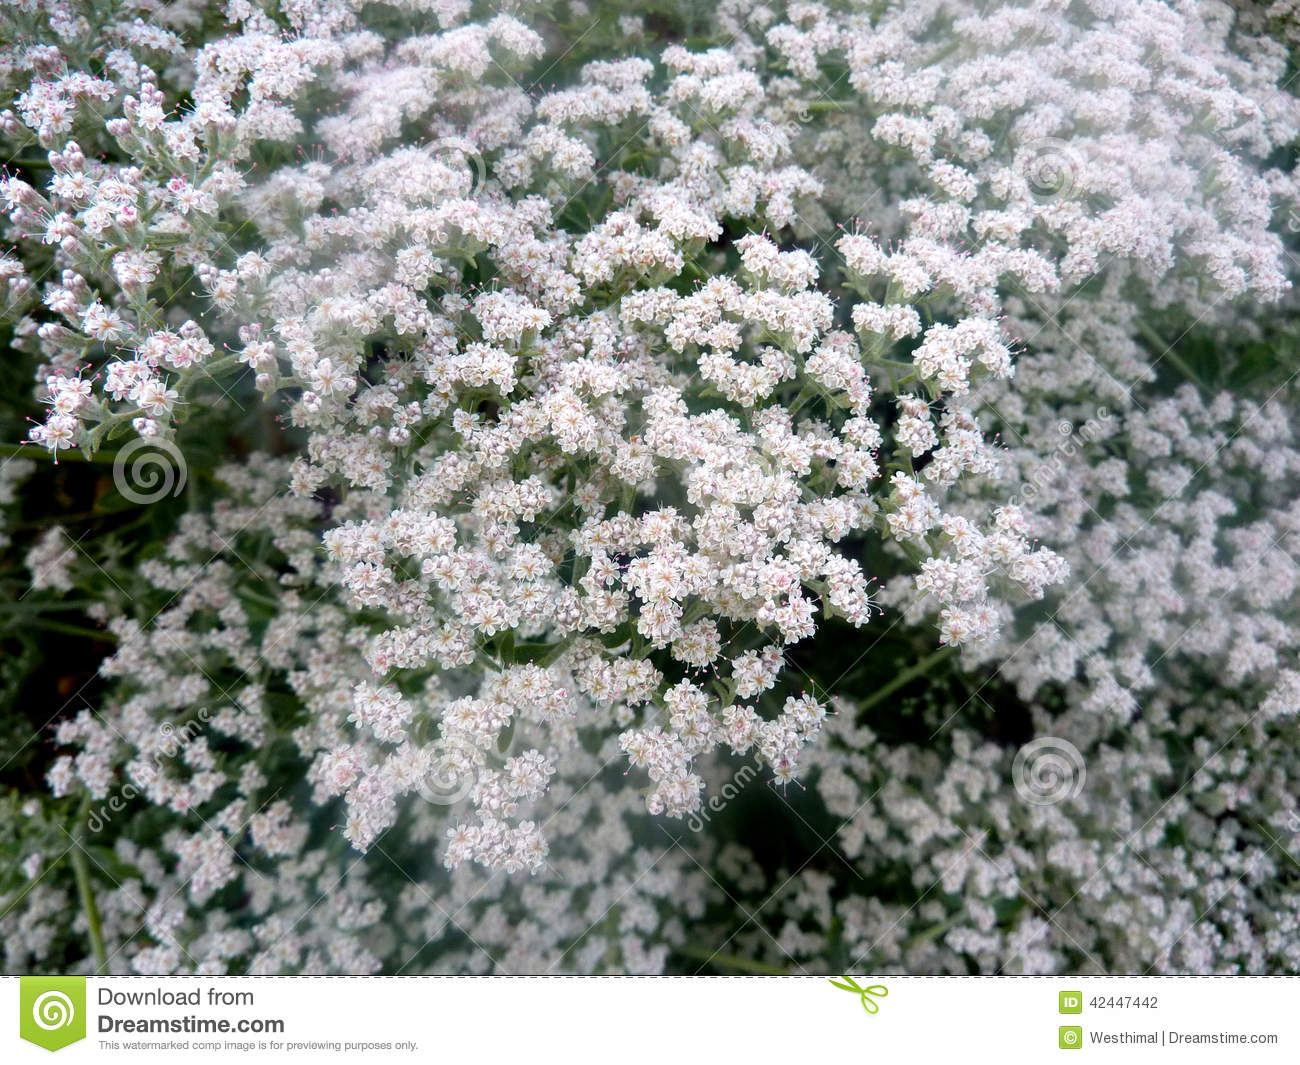 Eriogonum giganteum st catherines lace stock photo image of eriogonum giganteum st catherines lace hemispherical evergreen shrub with oval shaped grey leaves and small white flowers covering the whole bush mightylinksfo